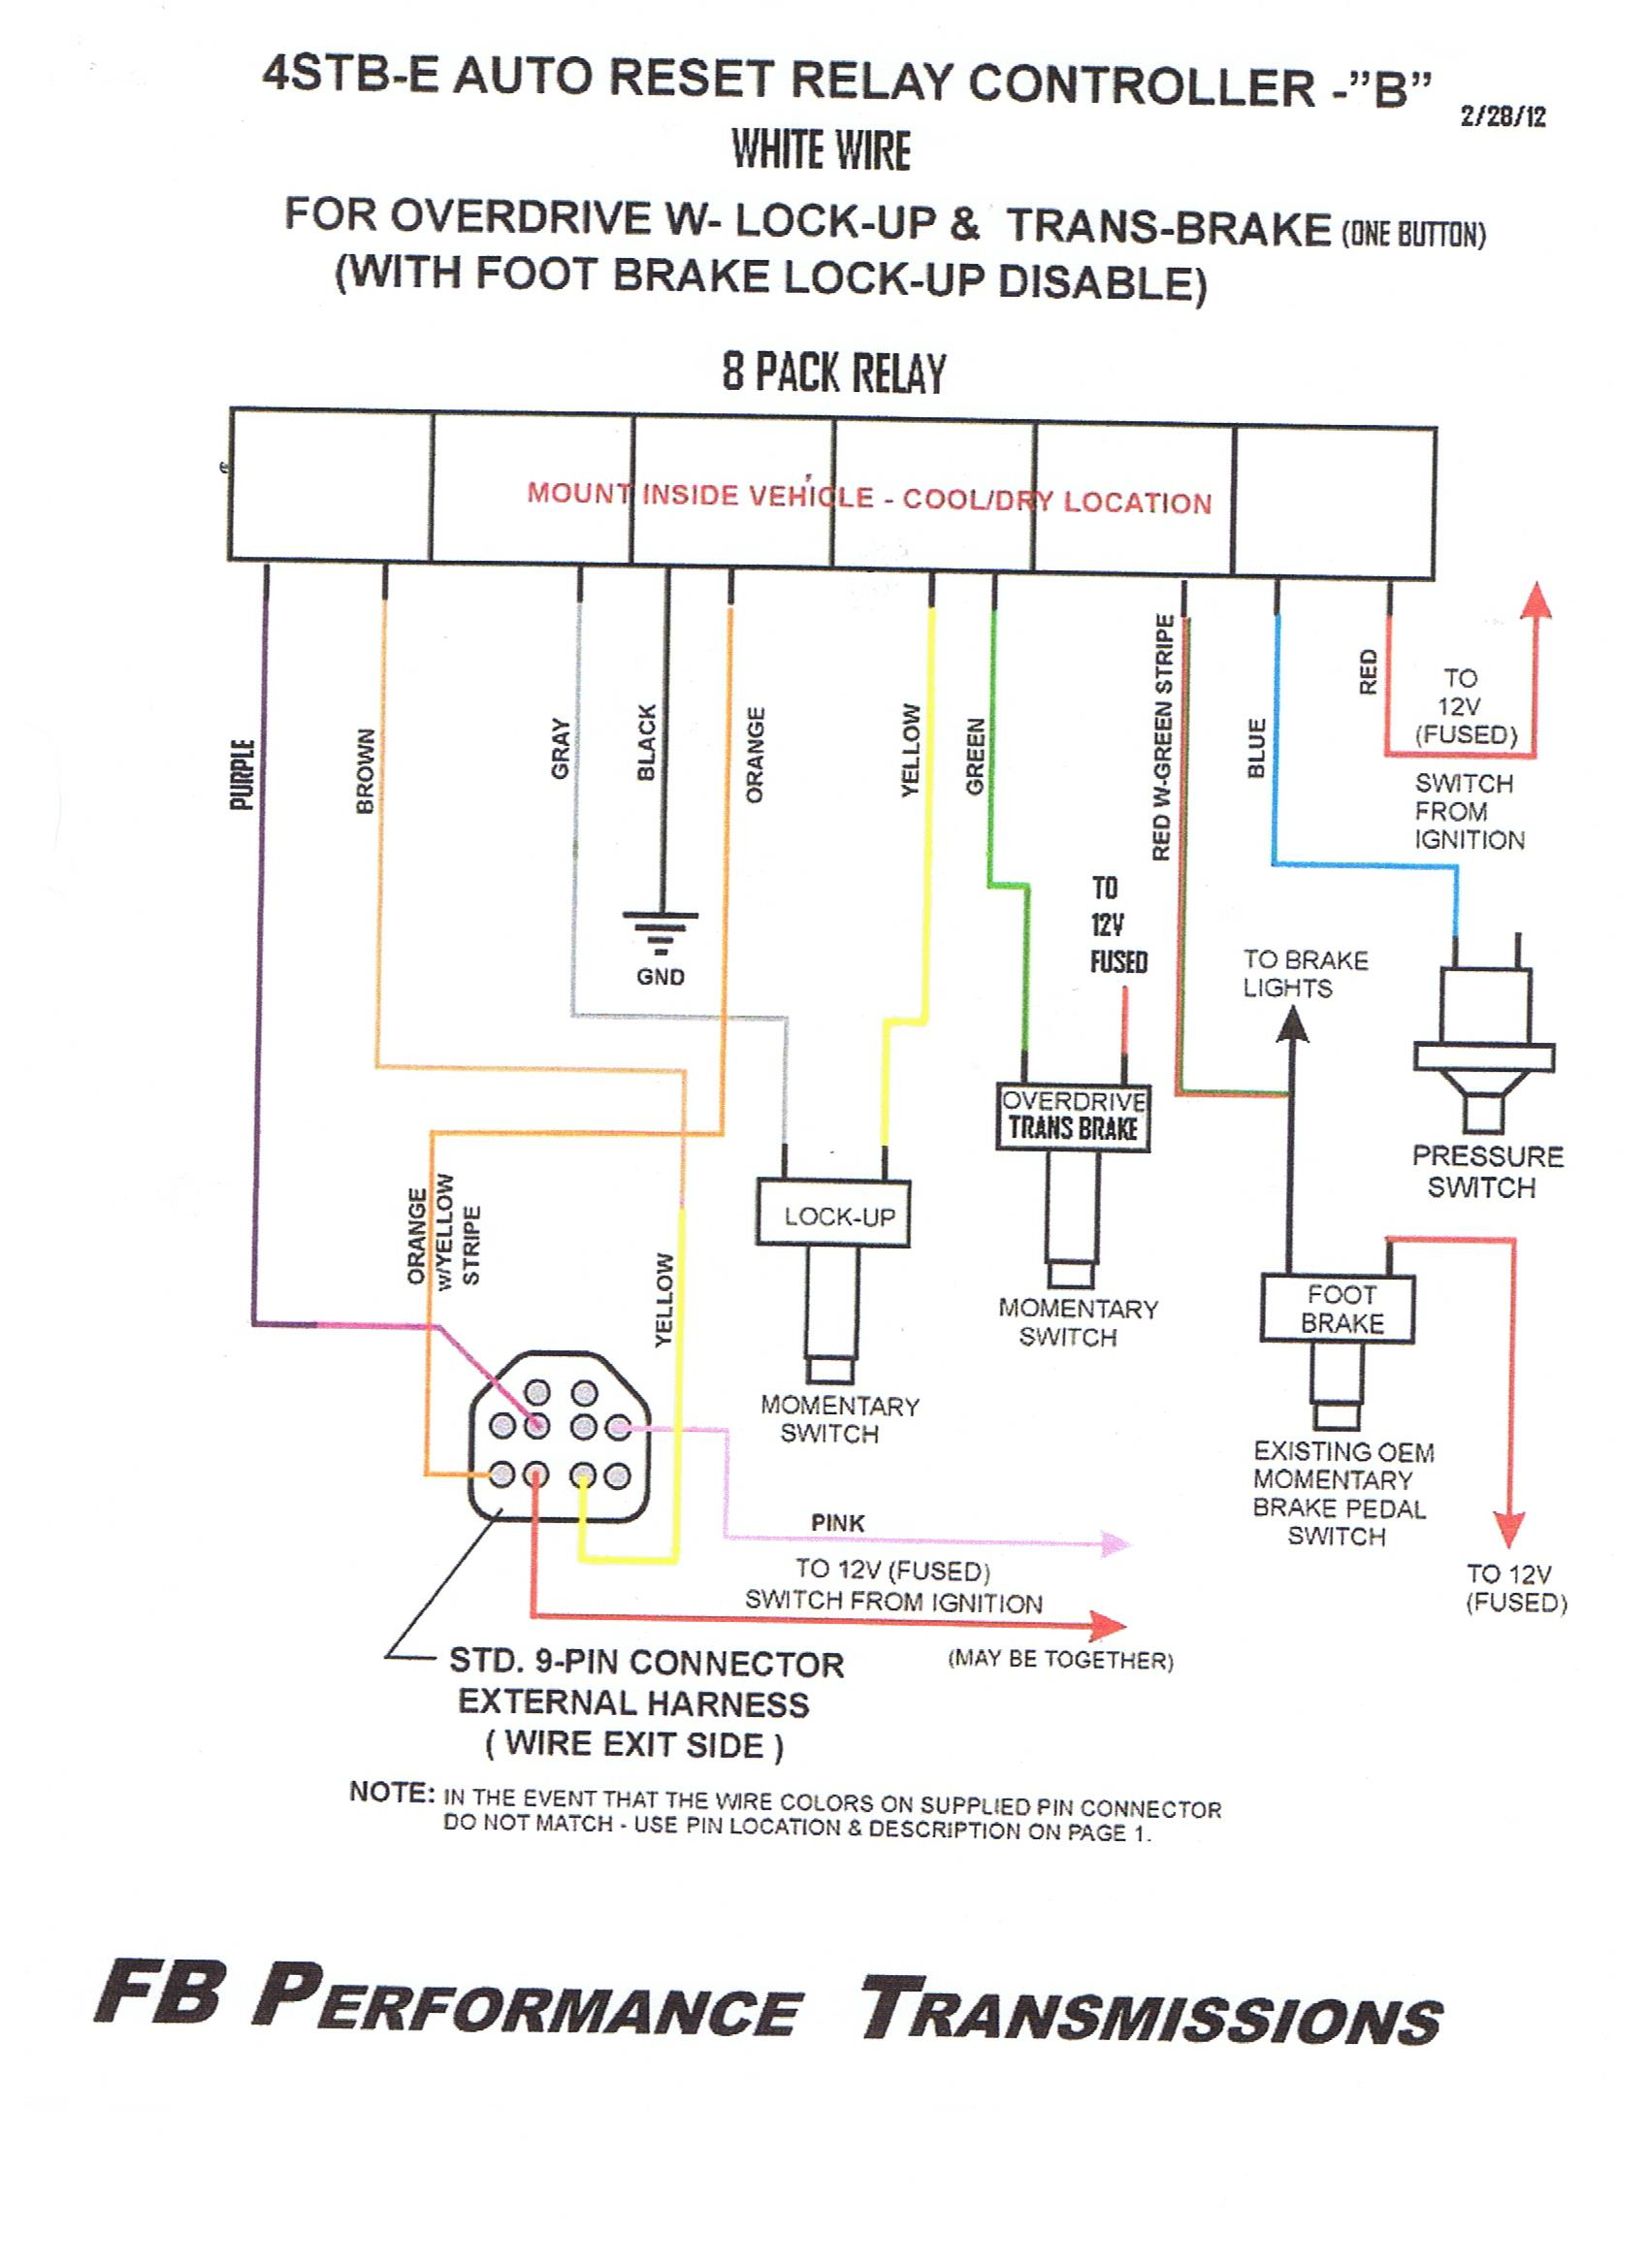 005 Copy technical advice 48re transmission wiring diagram at reclaimingppi.co